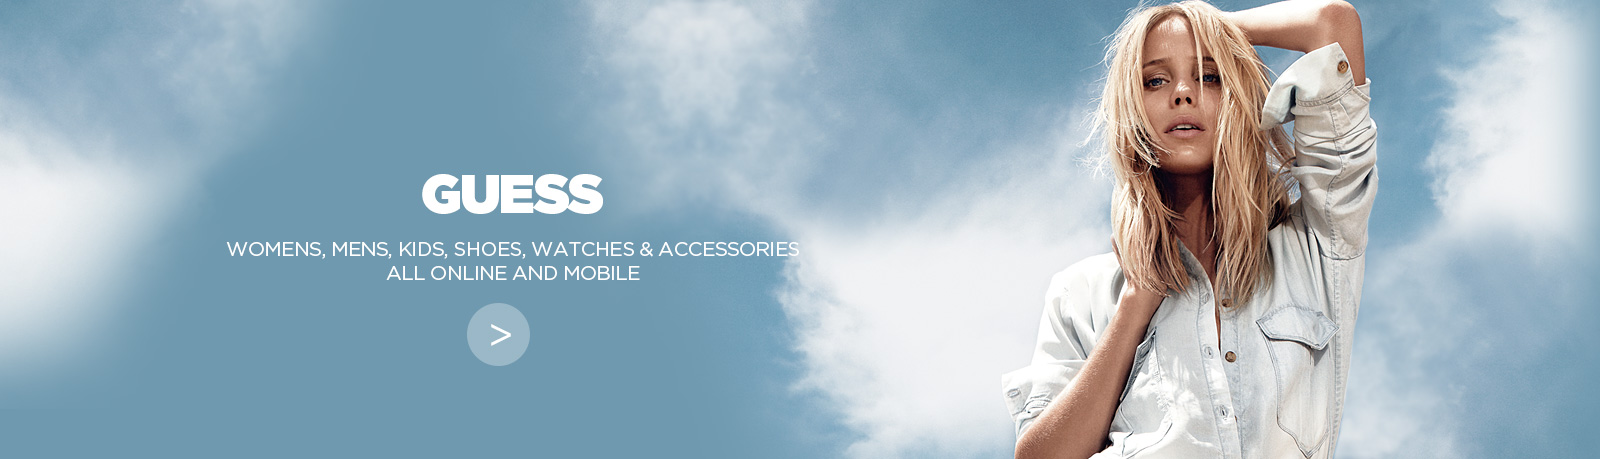 New GUESS e-commerce website and Mobile site built by NOW Solutions Digital Agency